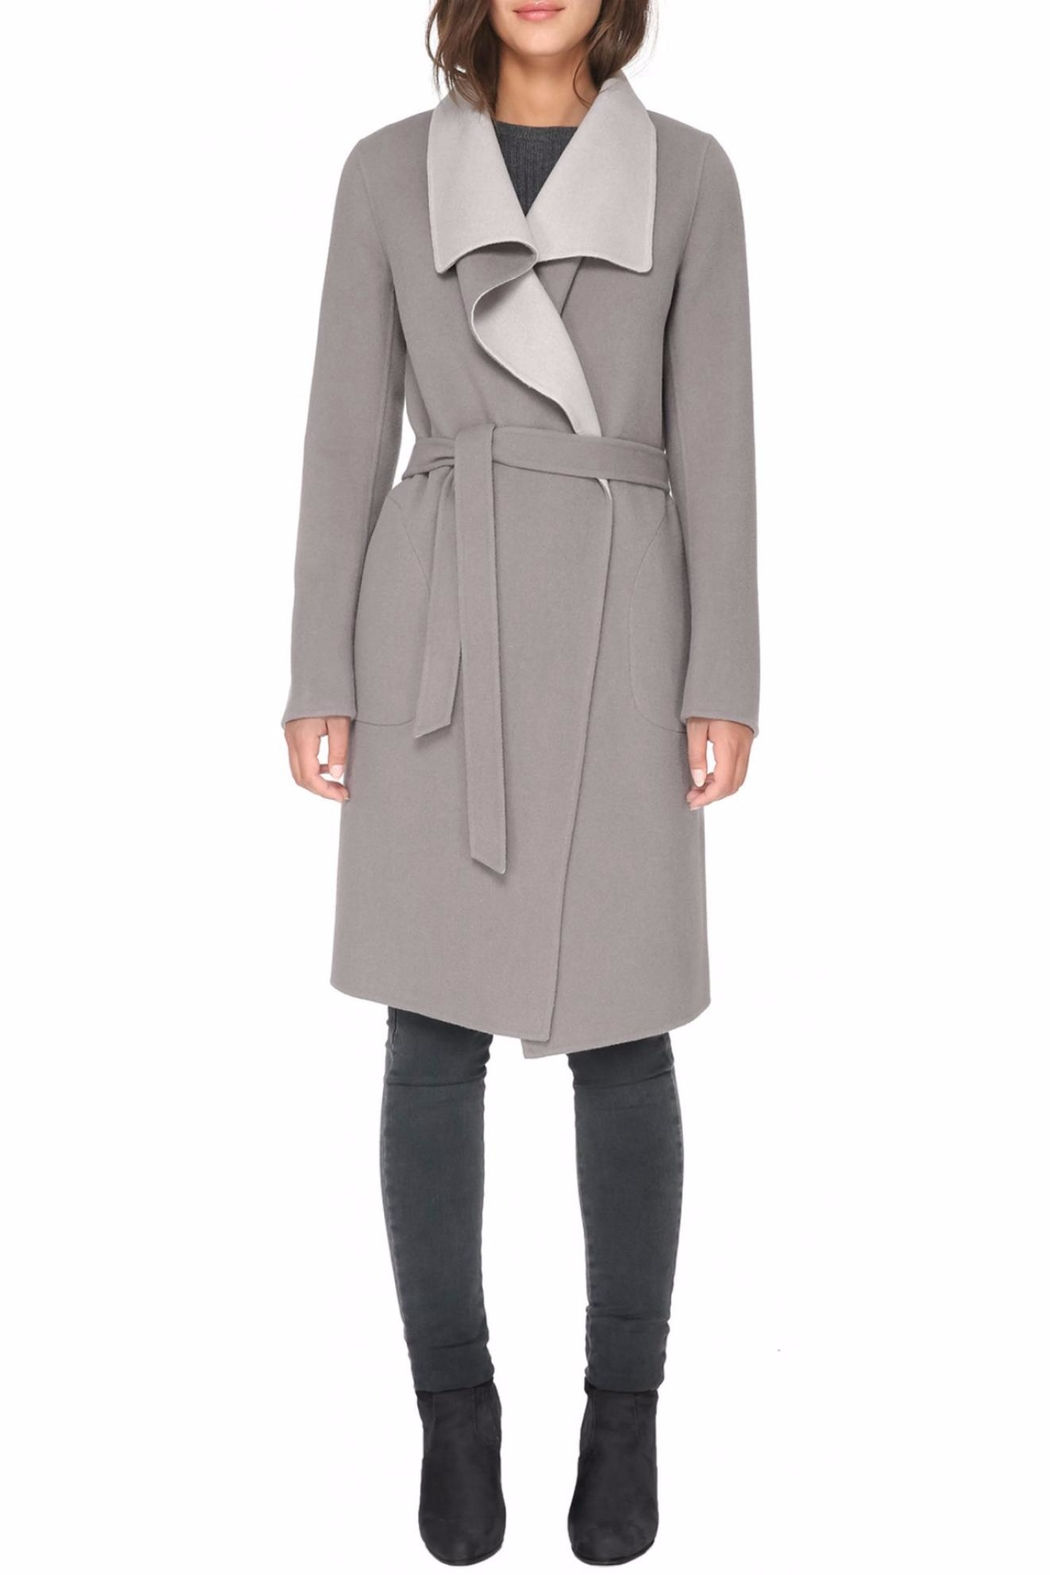 Soia & Kyo Oxana Wool Coat - Front Cropped Image